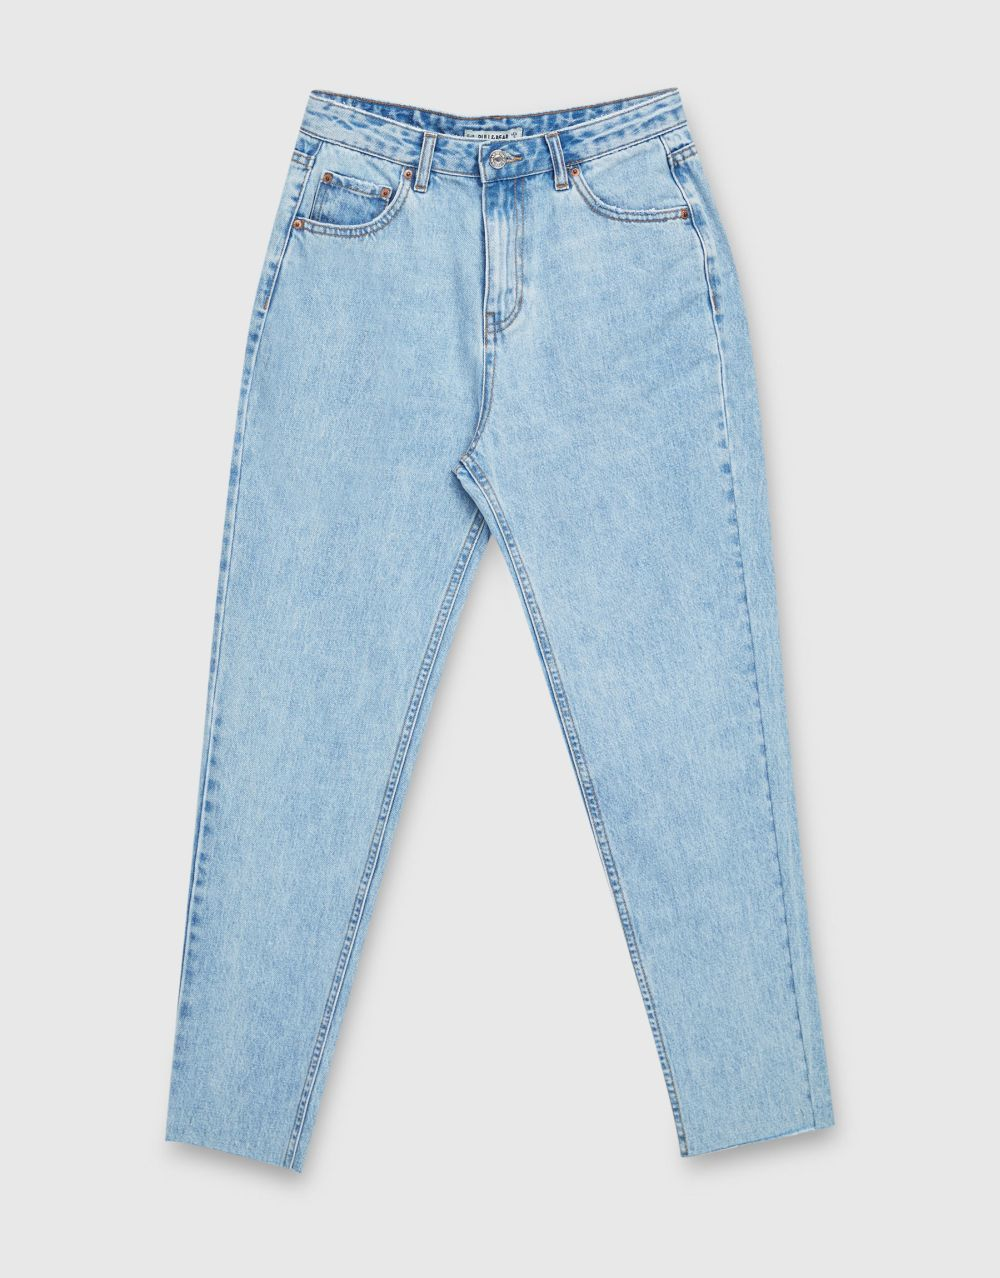 Jeans mom fit de Pull&Bear (49,99 euros)